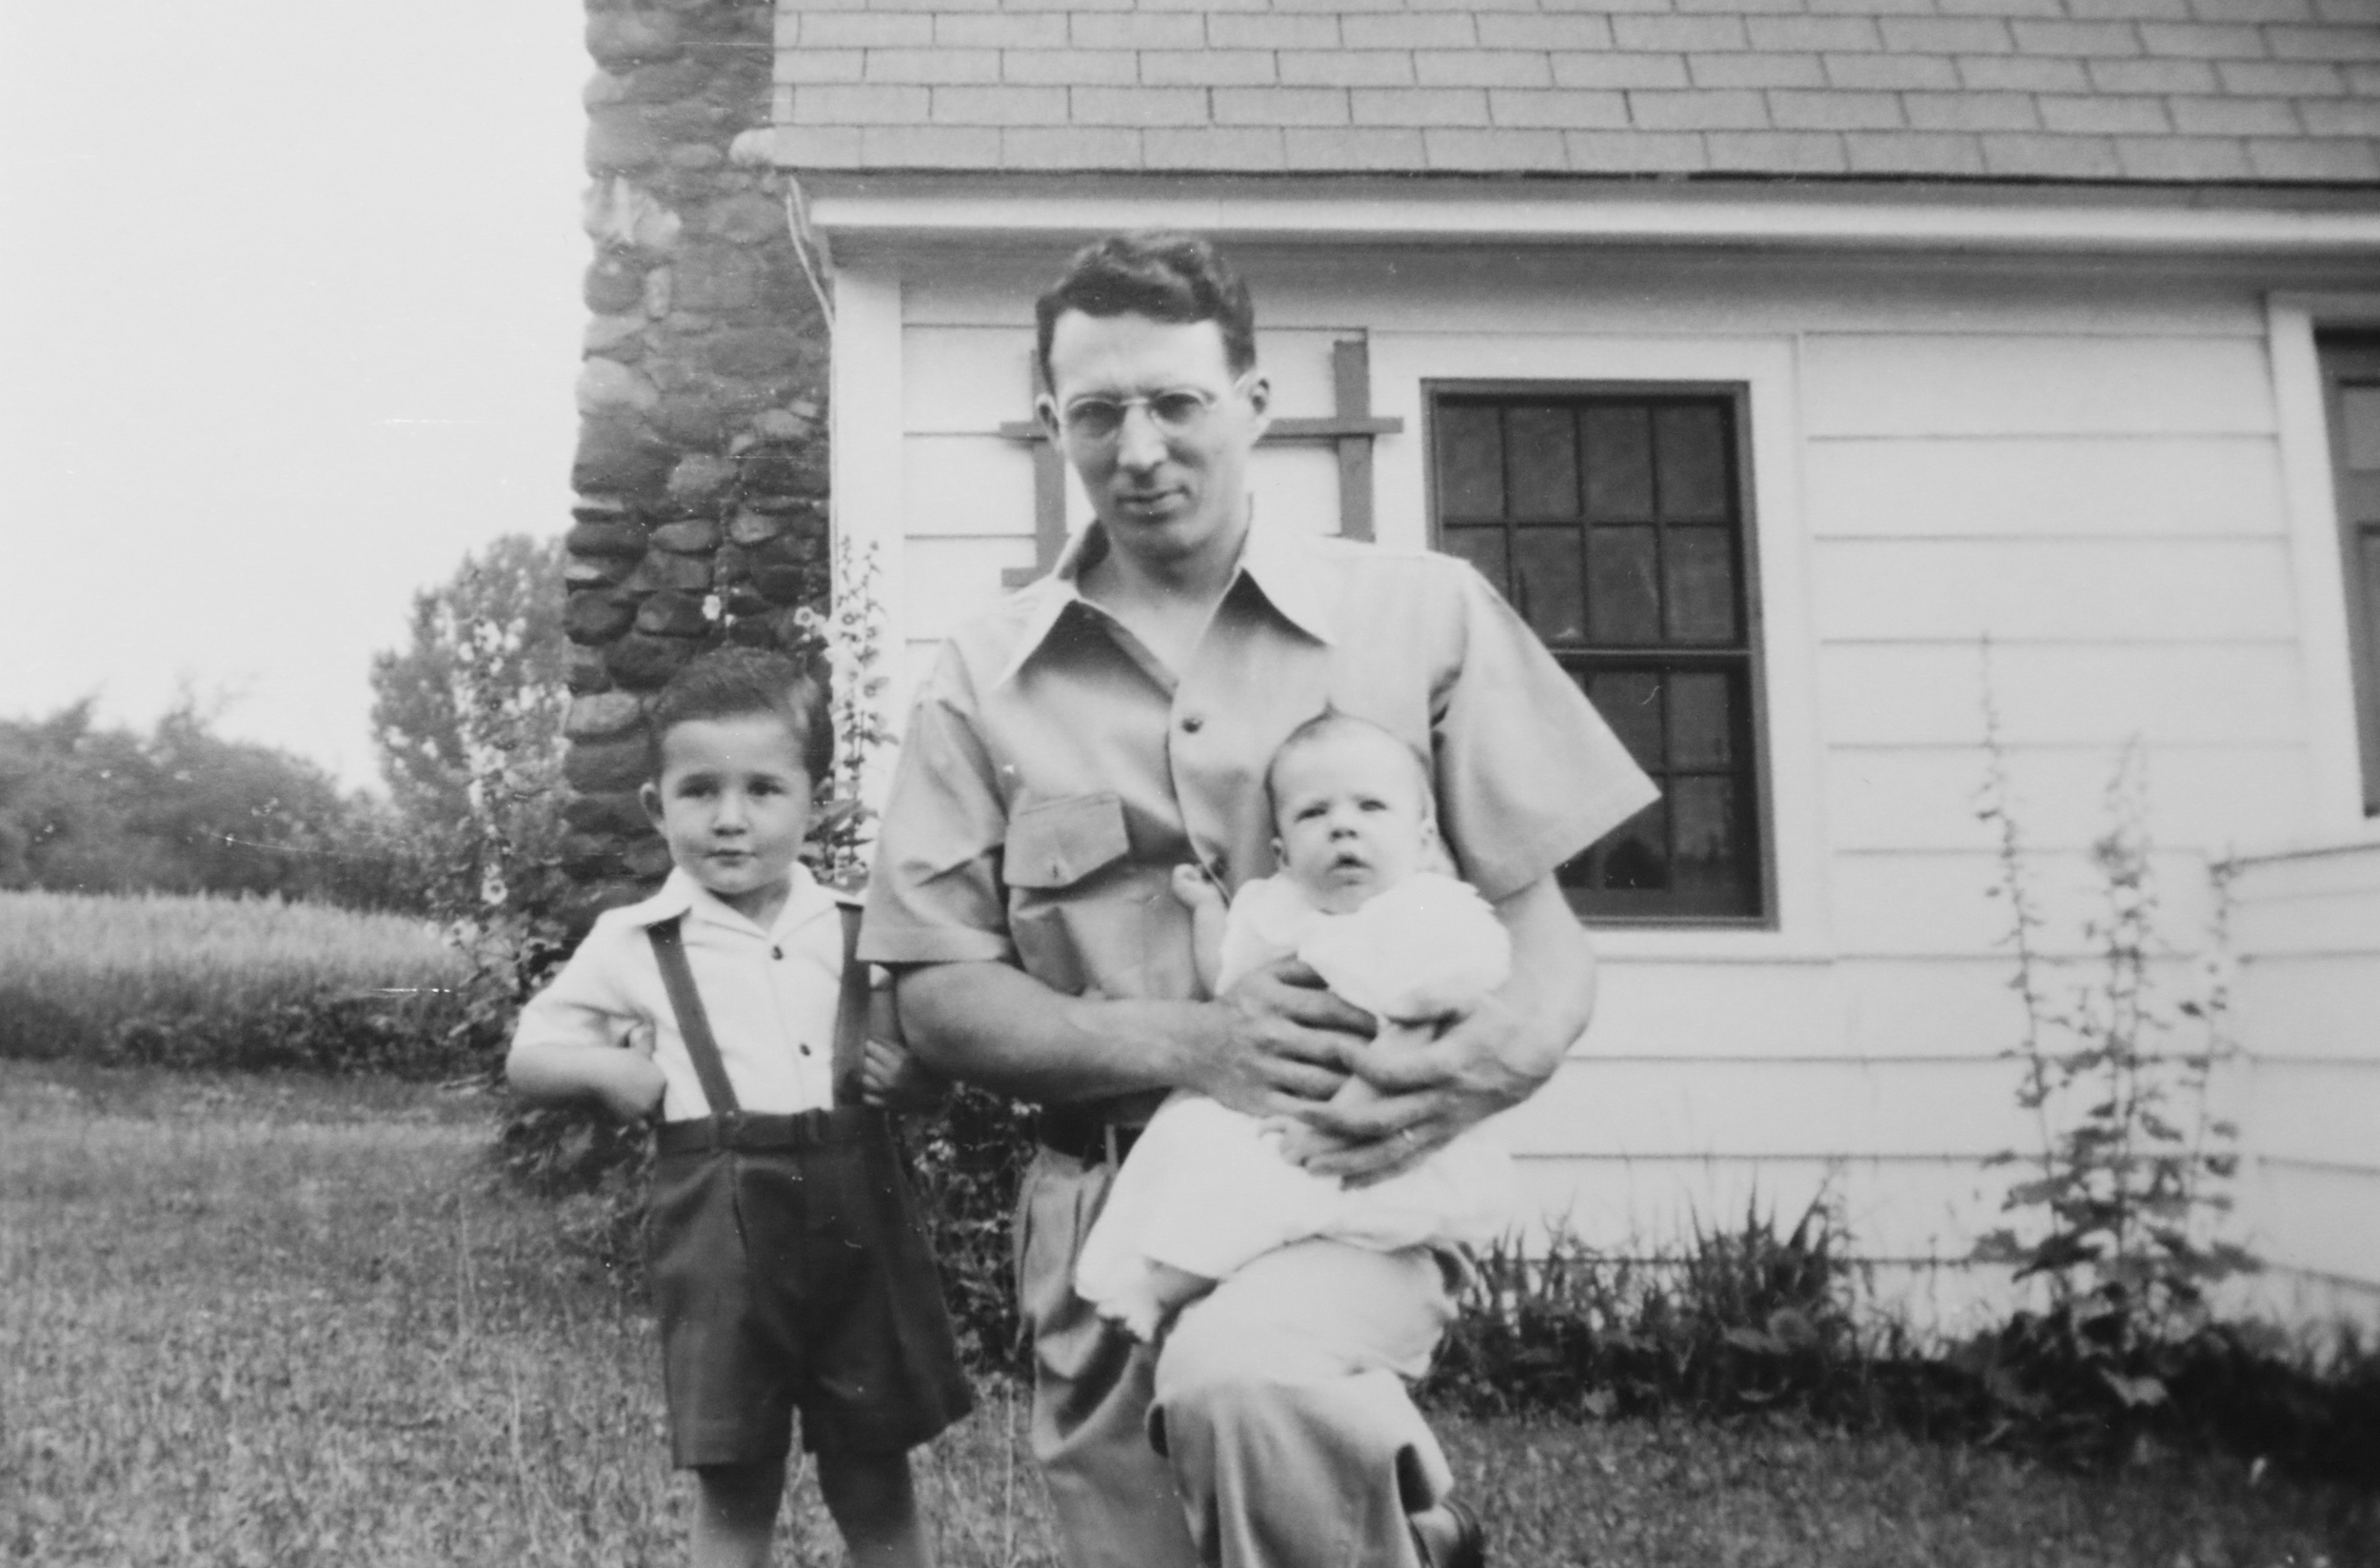 George Jr. (left) stands with his father and his brother Rodney in front of their house in Bloomfield, Connecticut in the early-1940s. (Archive)